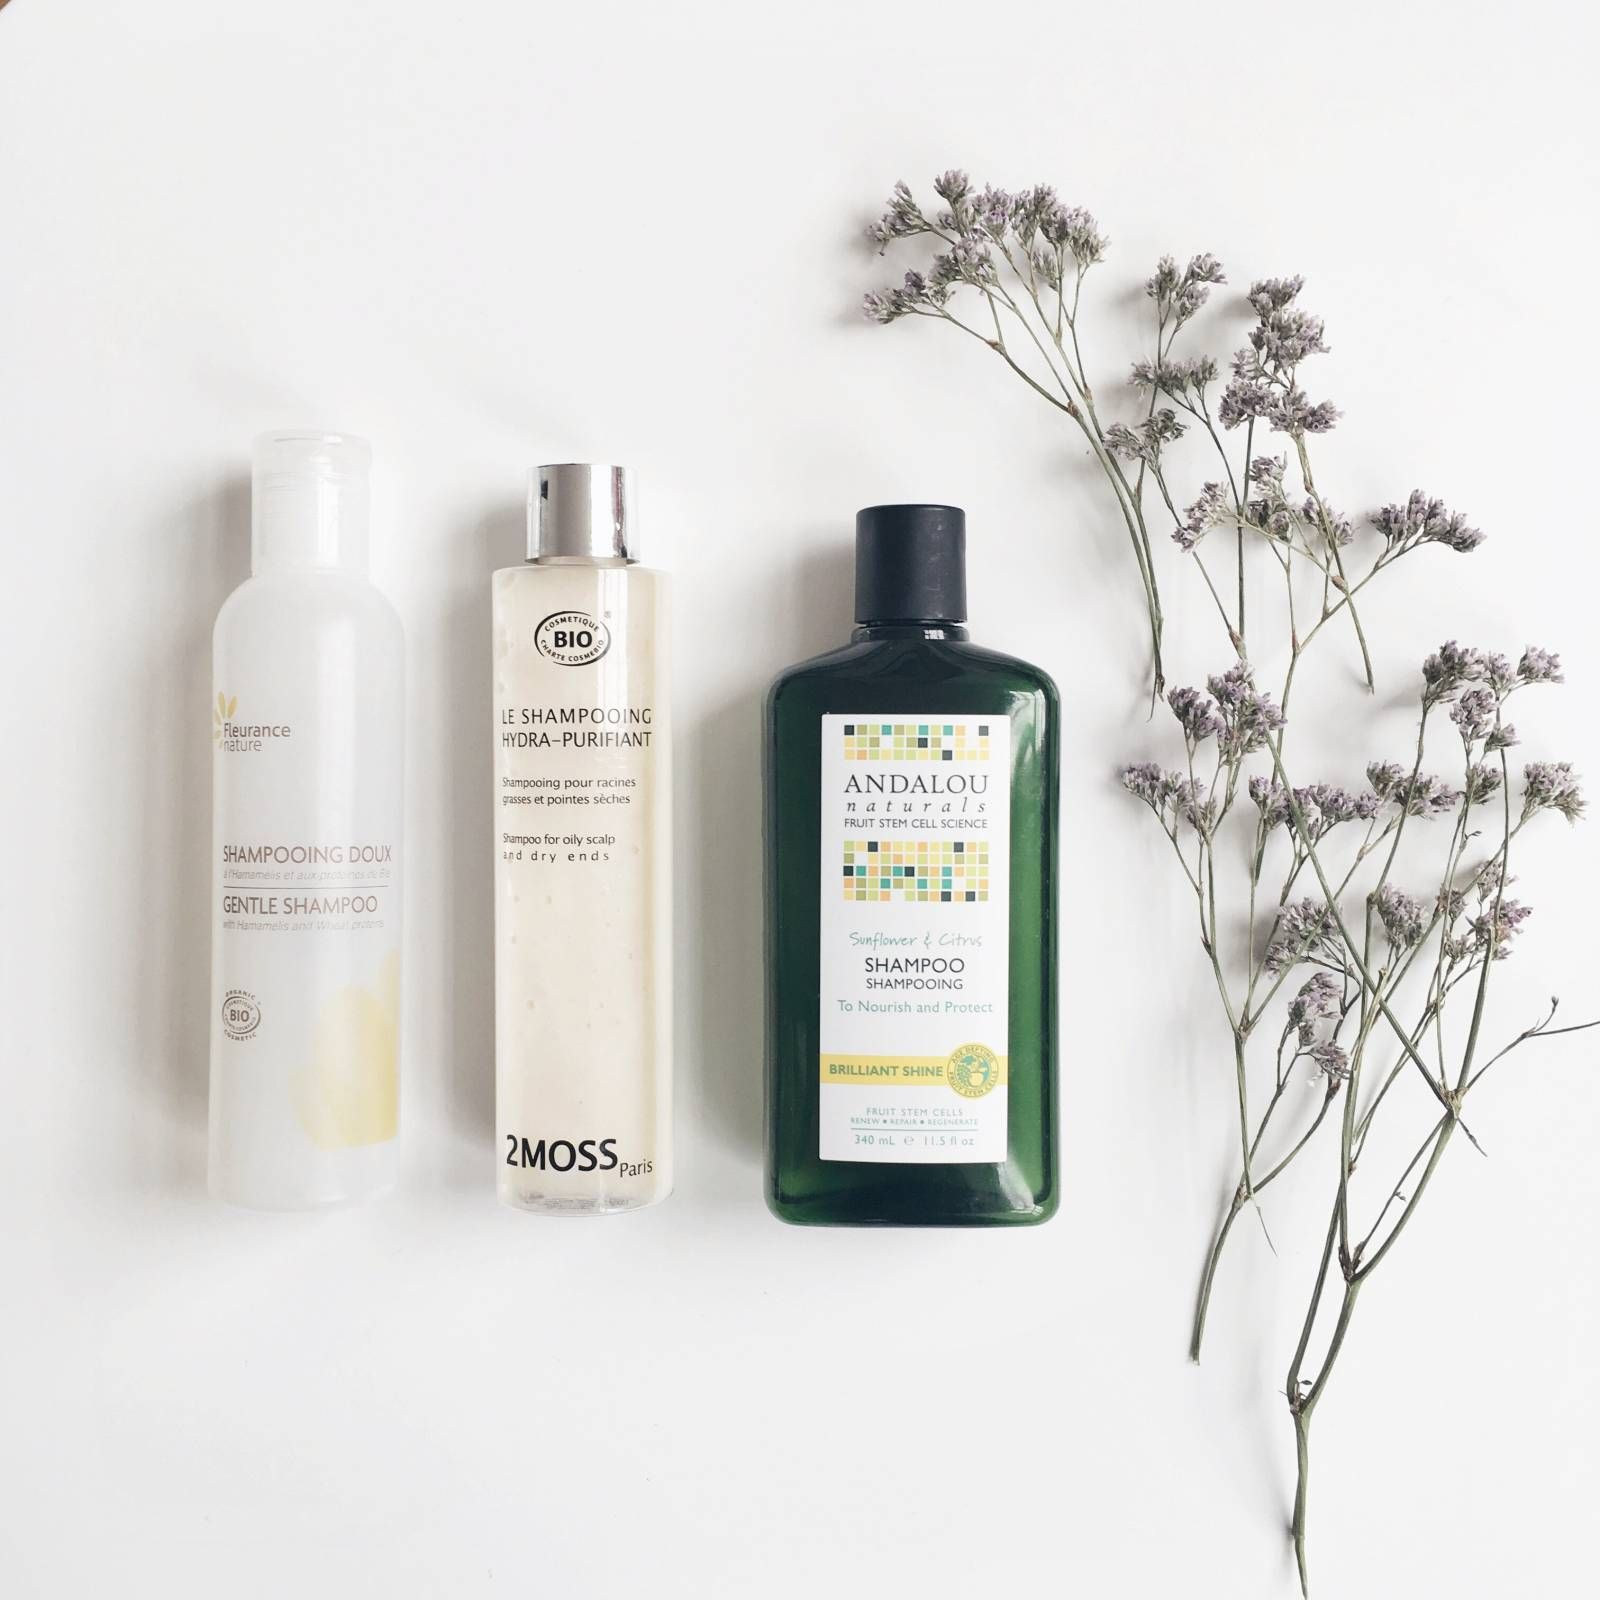 Organic Shampoo Review 2moss Fleurance Nature And Andalou Clear Strong Ampamp Soft 340 Ml Naturals